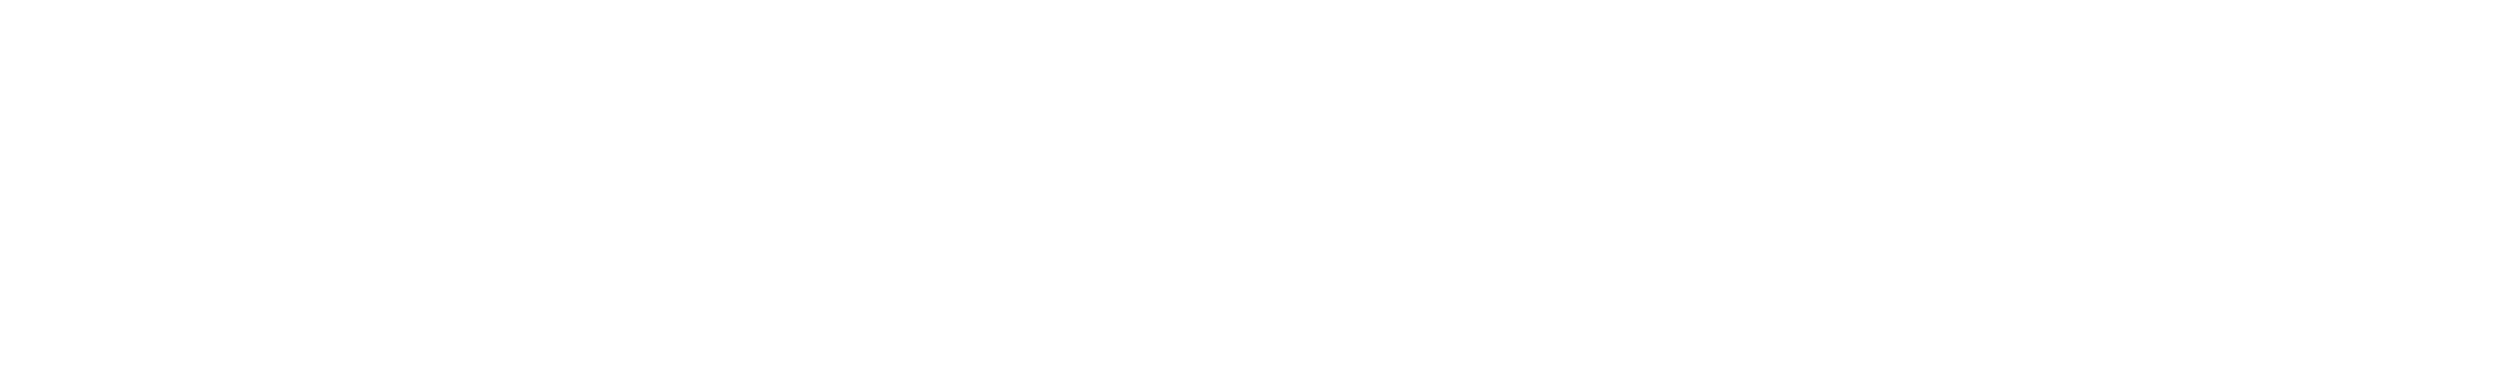 THEFACTORYCO_LOGO1.png